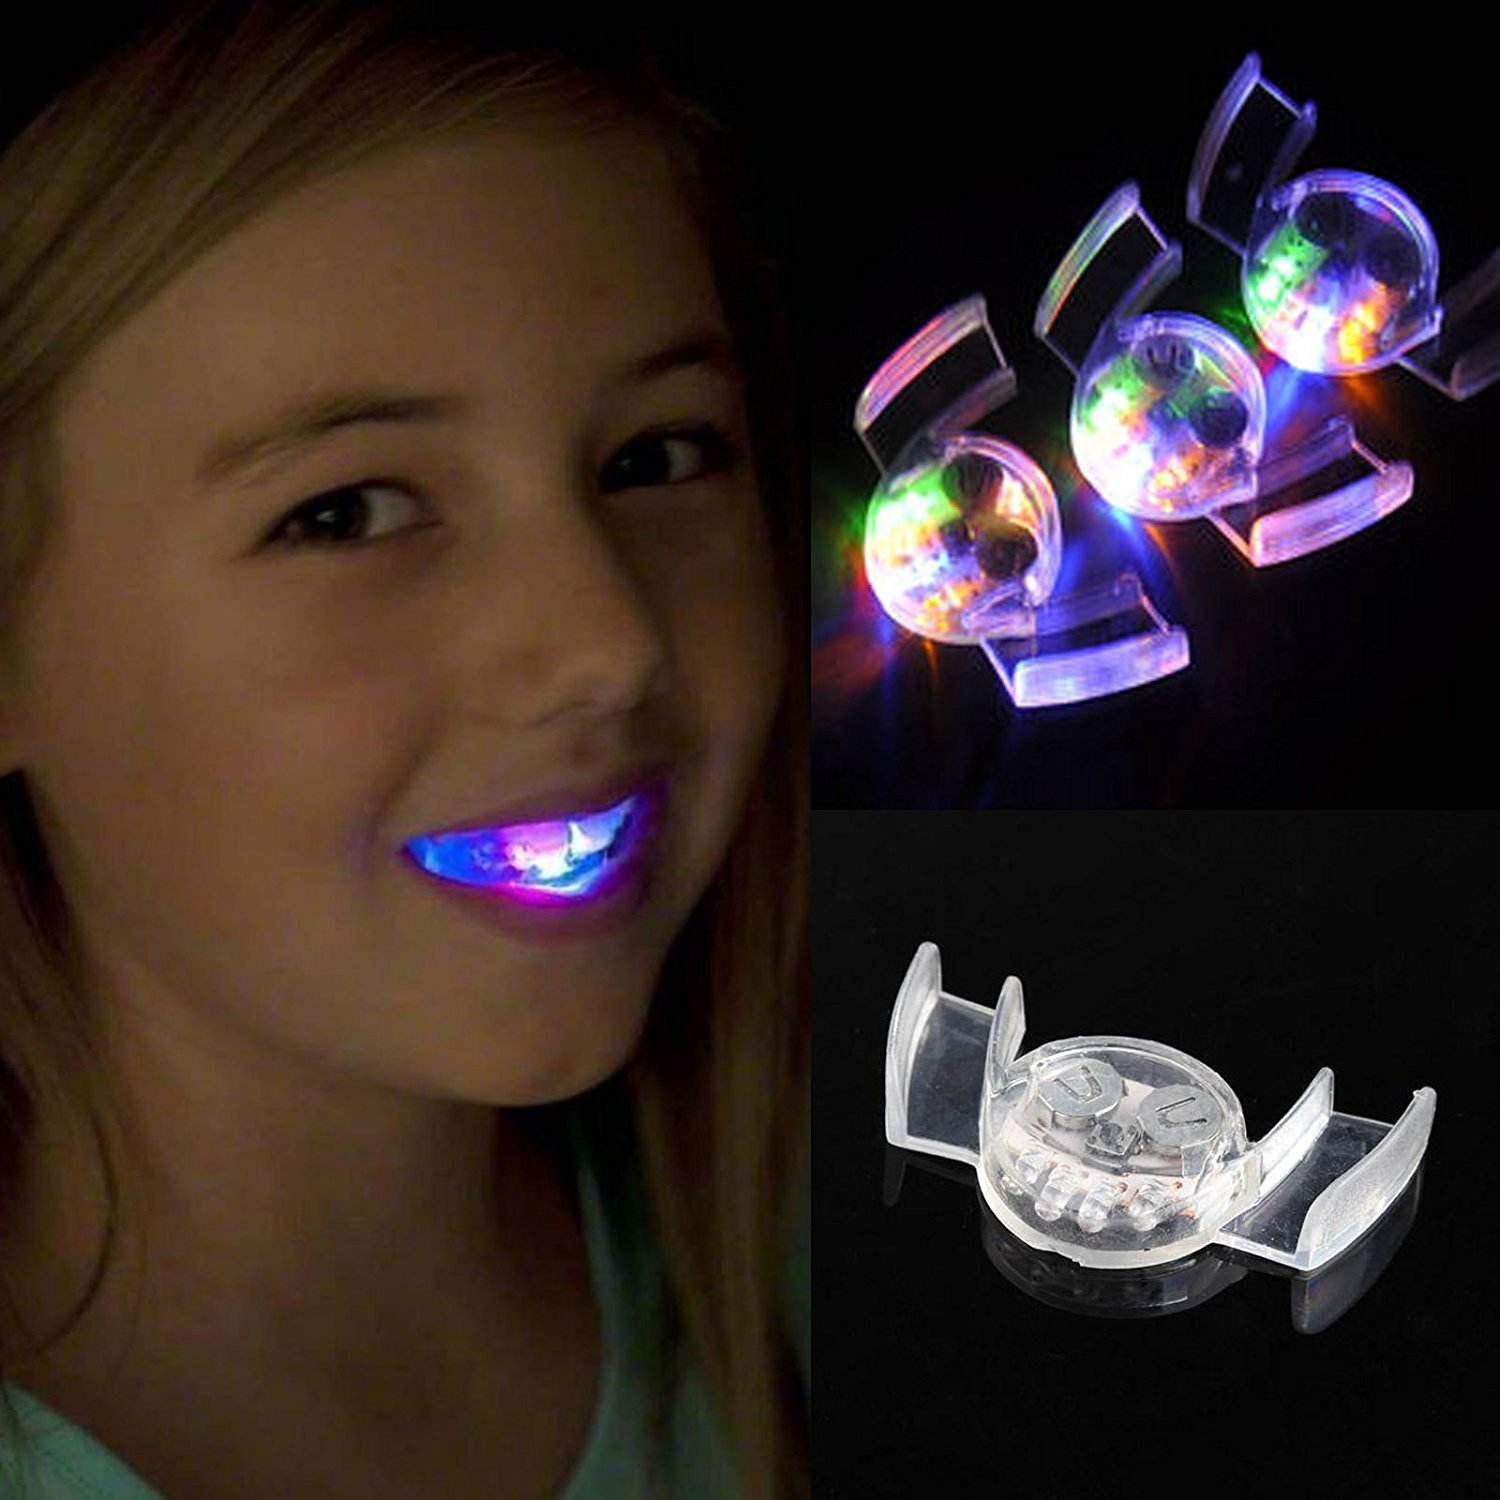 Flashing LED Mouthpiece Teeth Light Up Mouth Piece Halloween Guard Rave Party Favors Mouthpieces Gift (1)